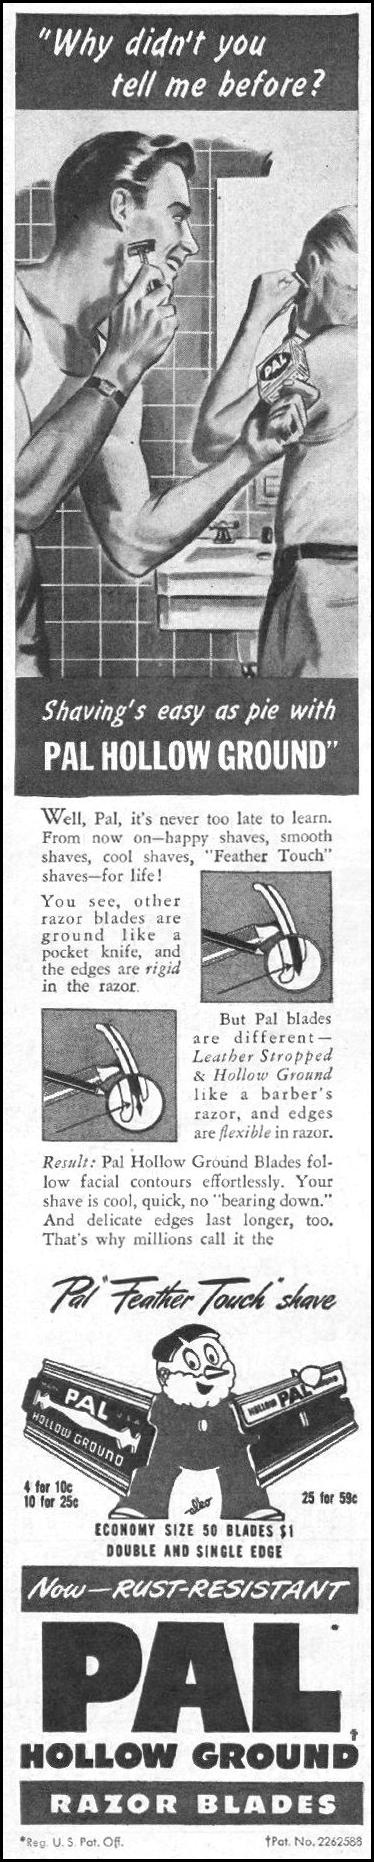 PAL HOLLOW-GROUND RAZOR BLADES LIFE 11/25/1946 p. 132